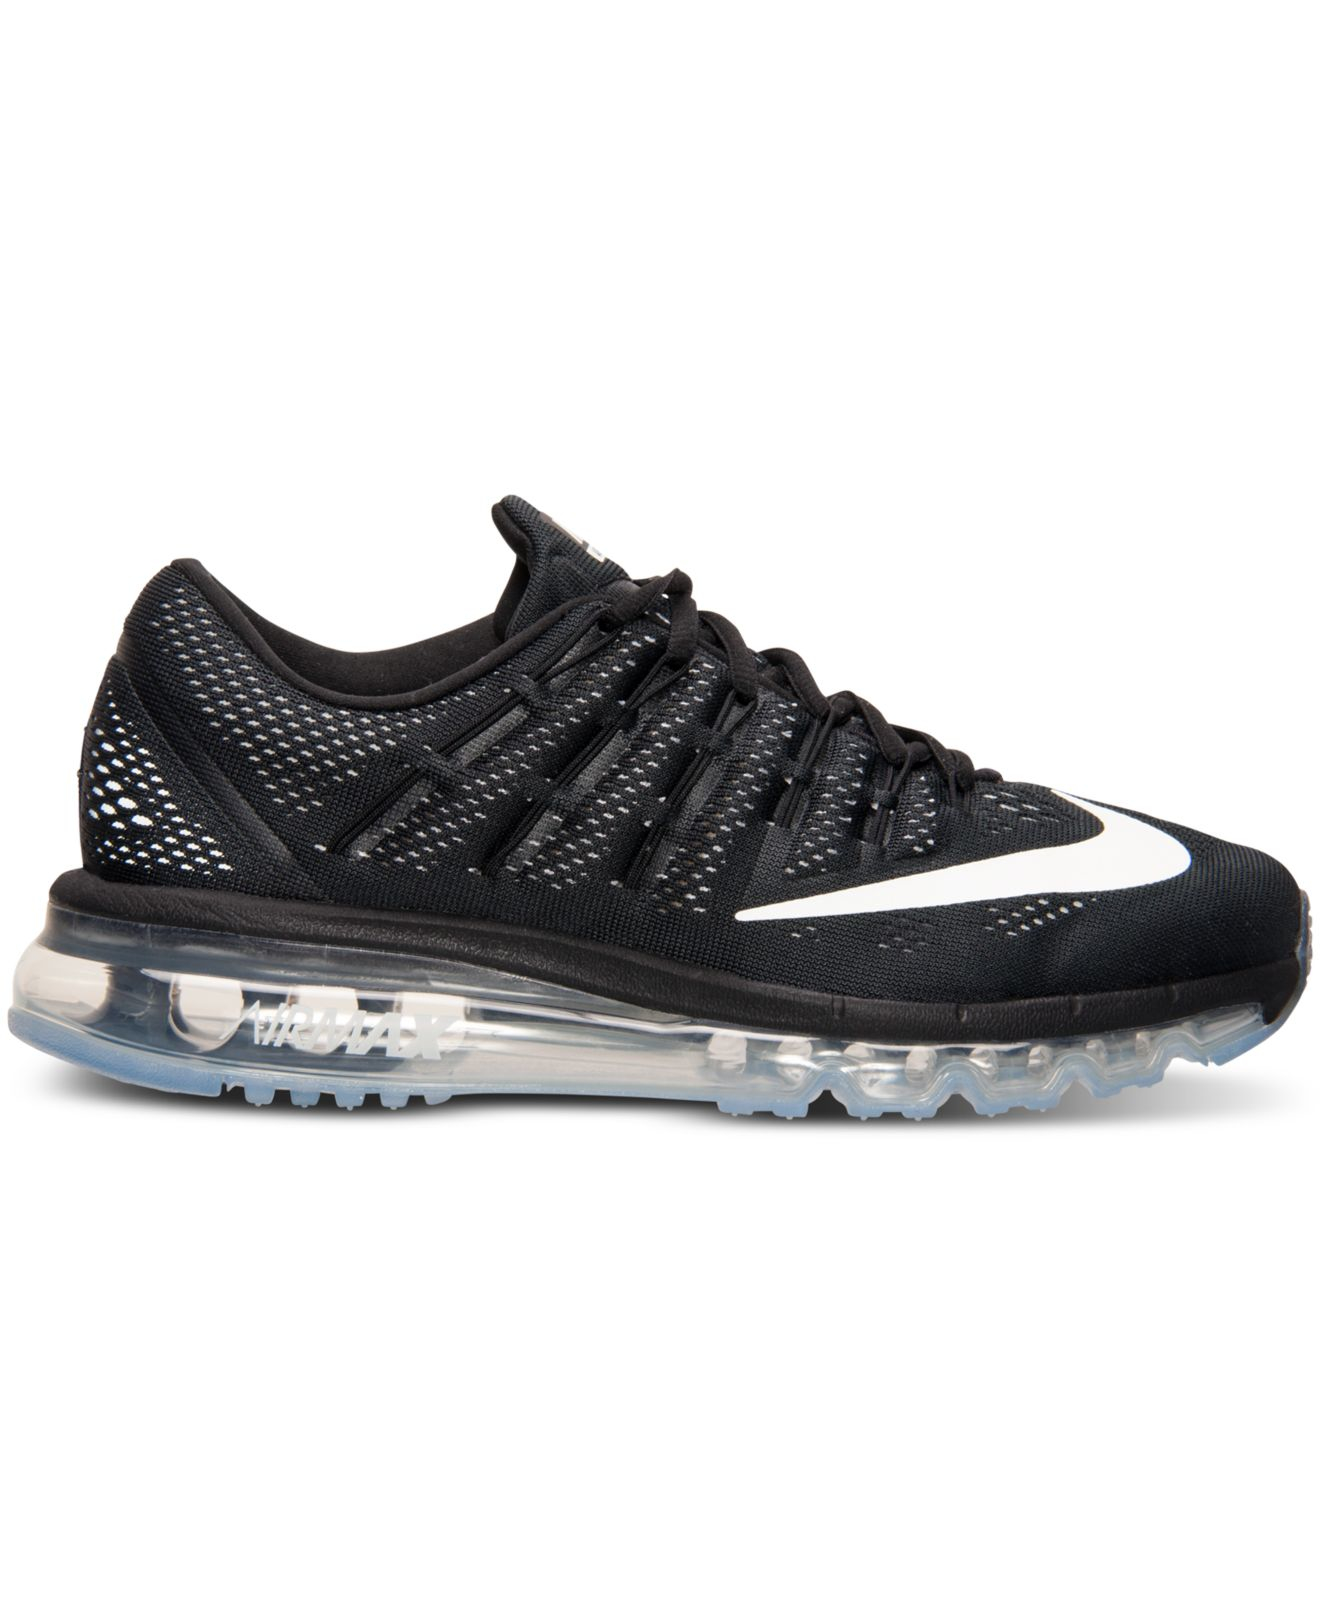 Nike Women's Air Max 2016 Running Sneakers From Finish Line in Black/White (Black) - Lyst